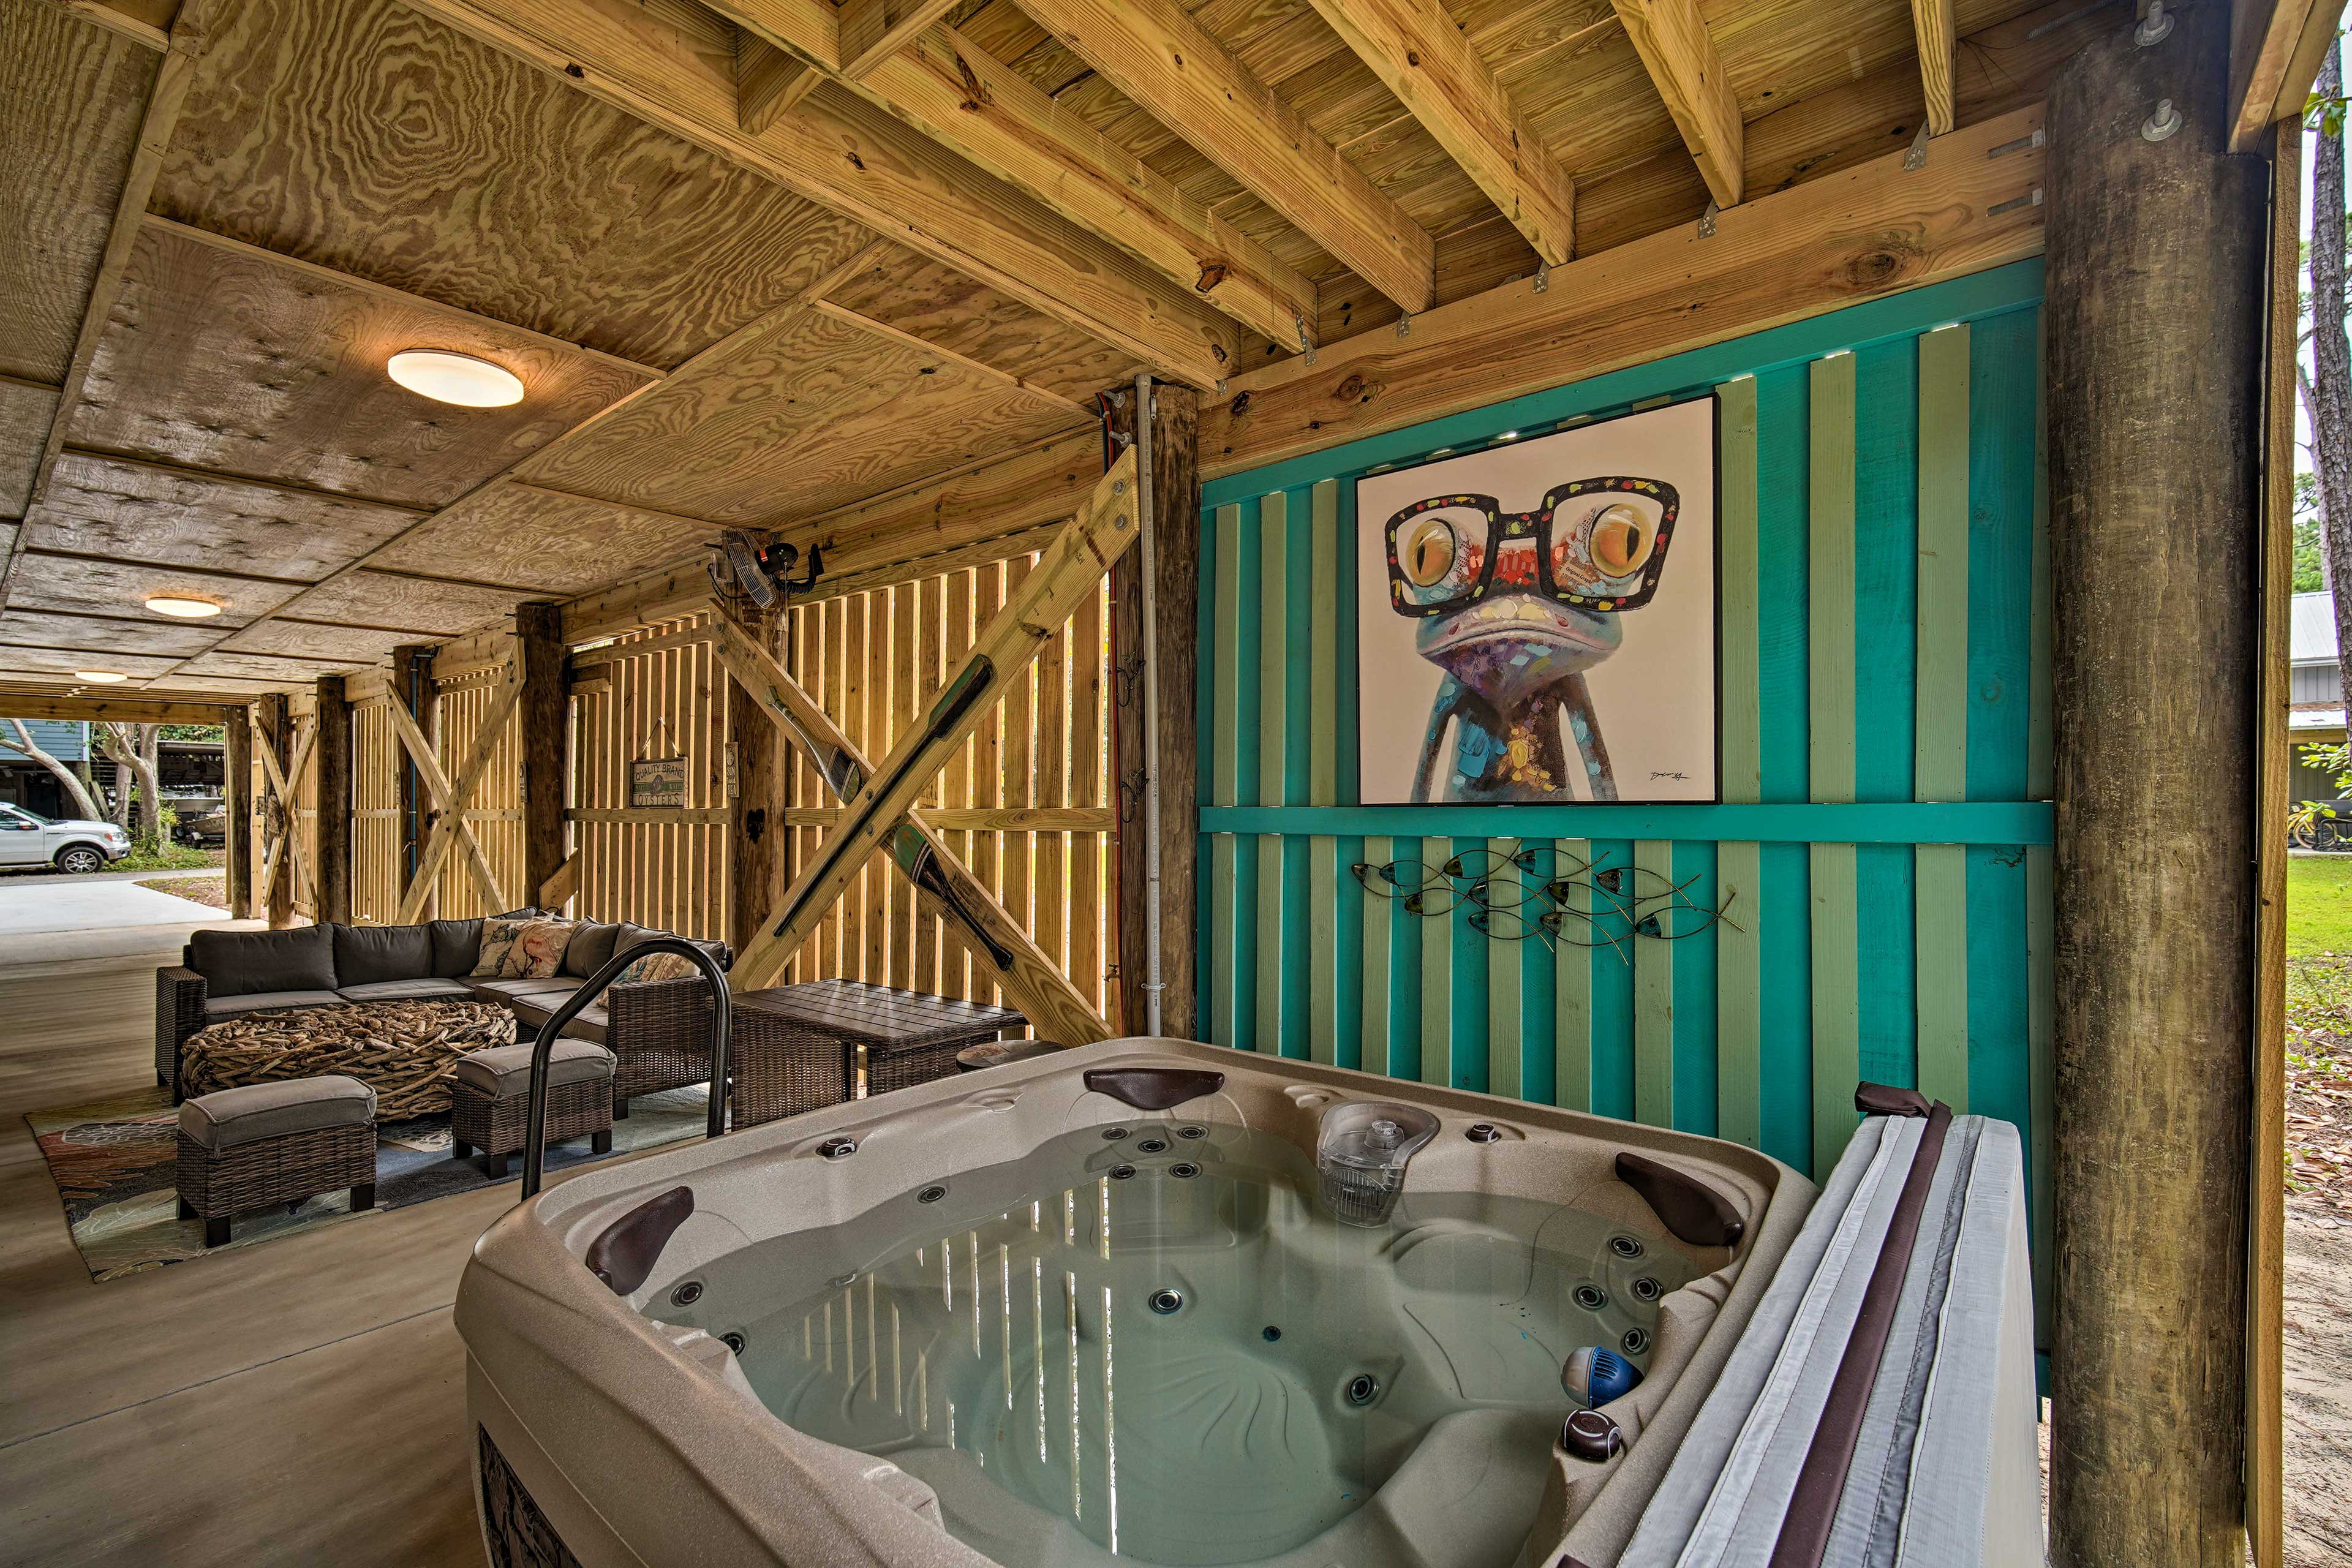 Soak in the hot tub to conclude your evening.